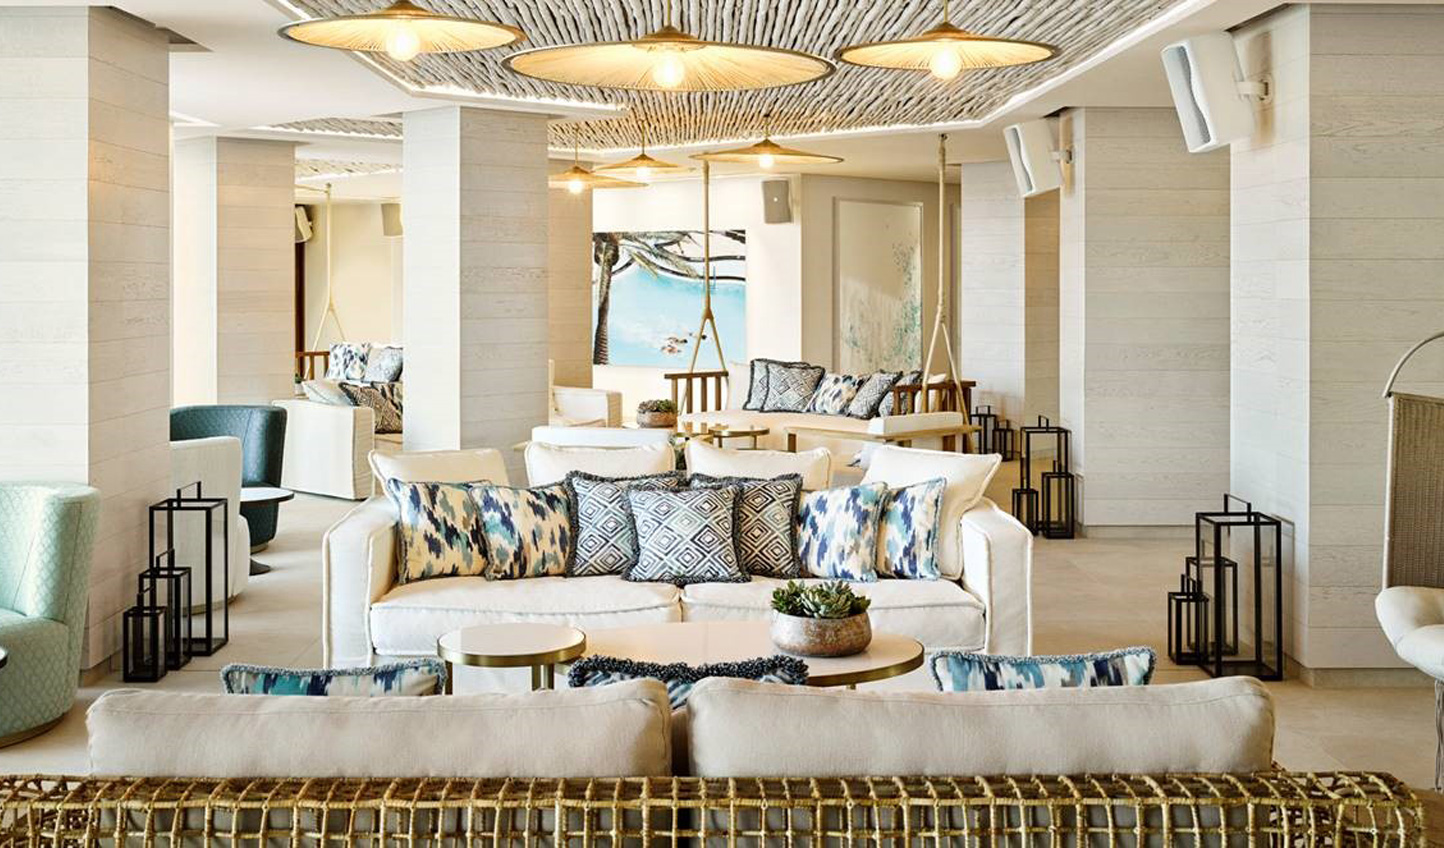 White and blue accents create super chic and stylish hotel